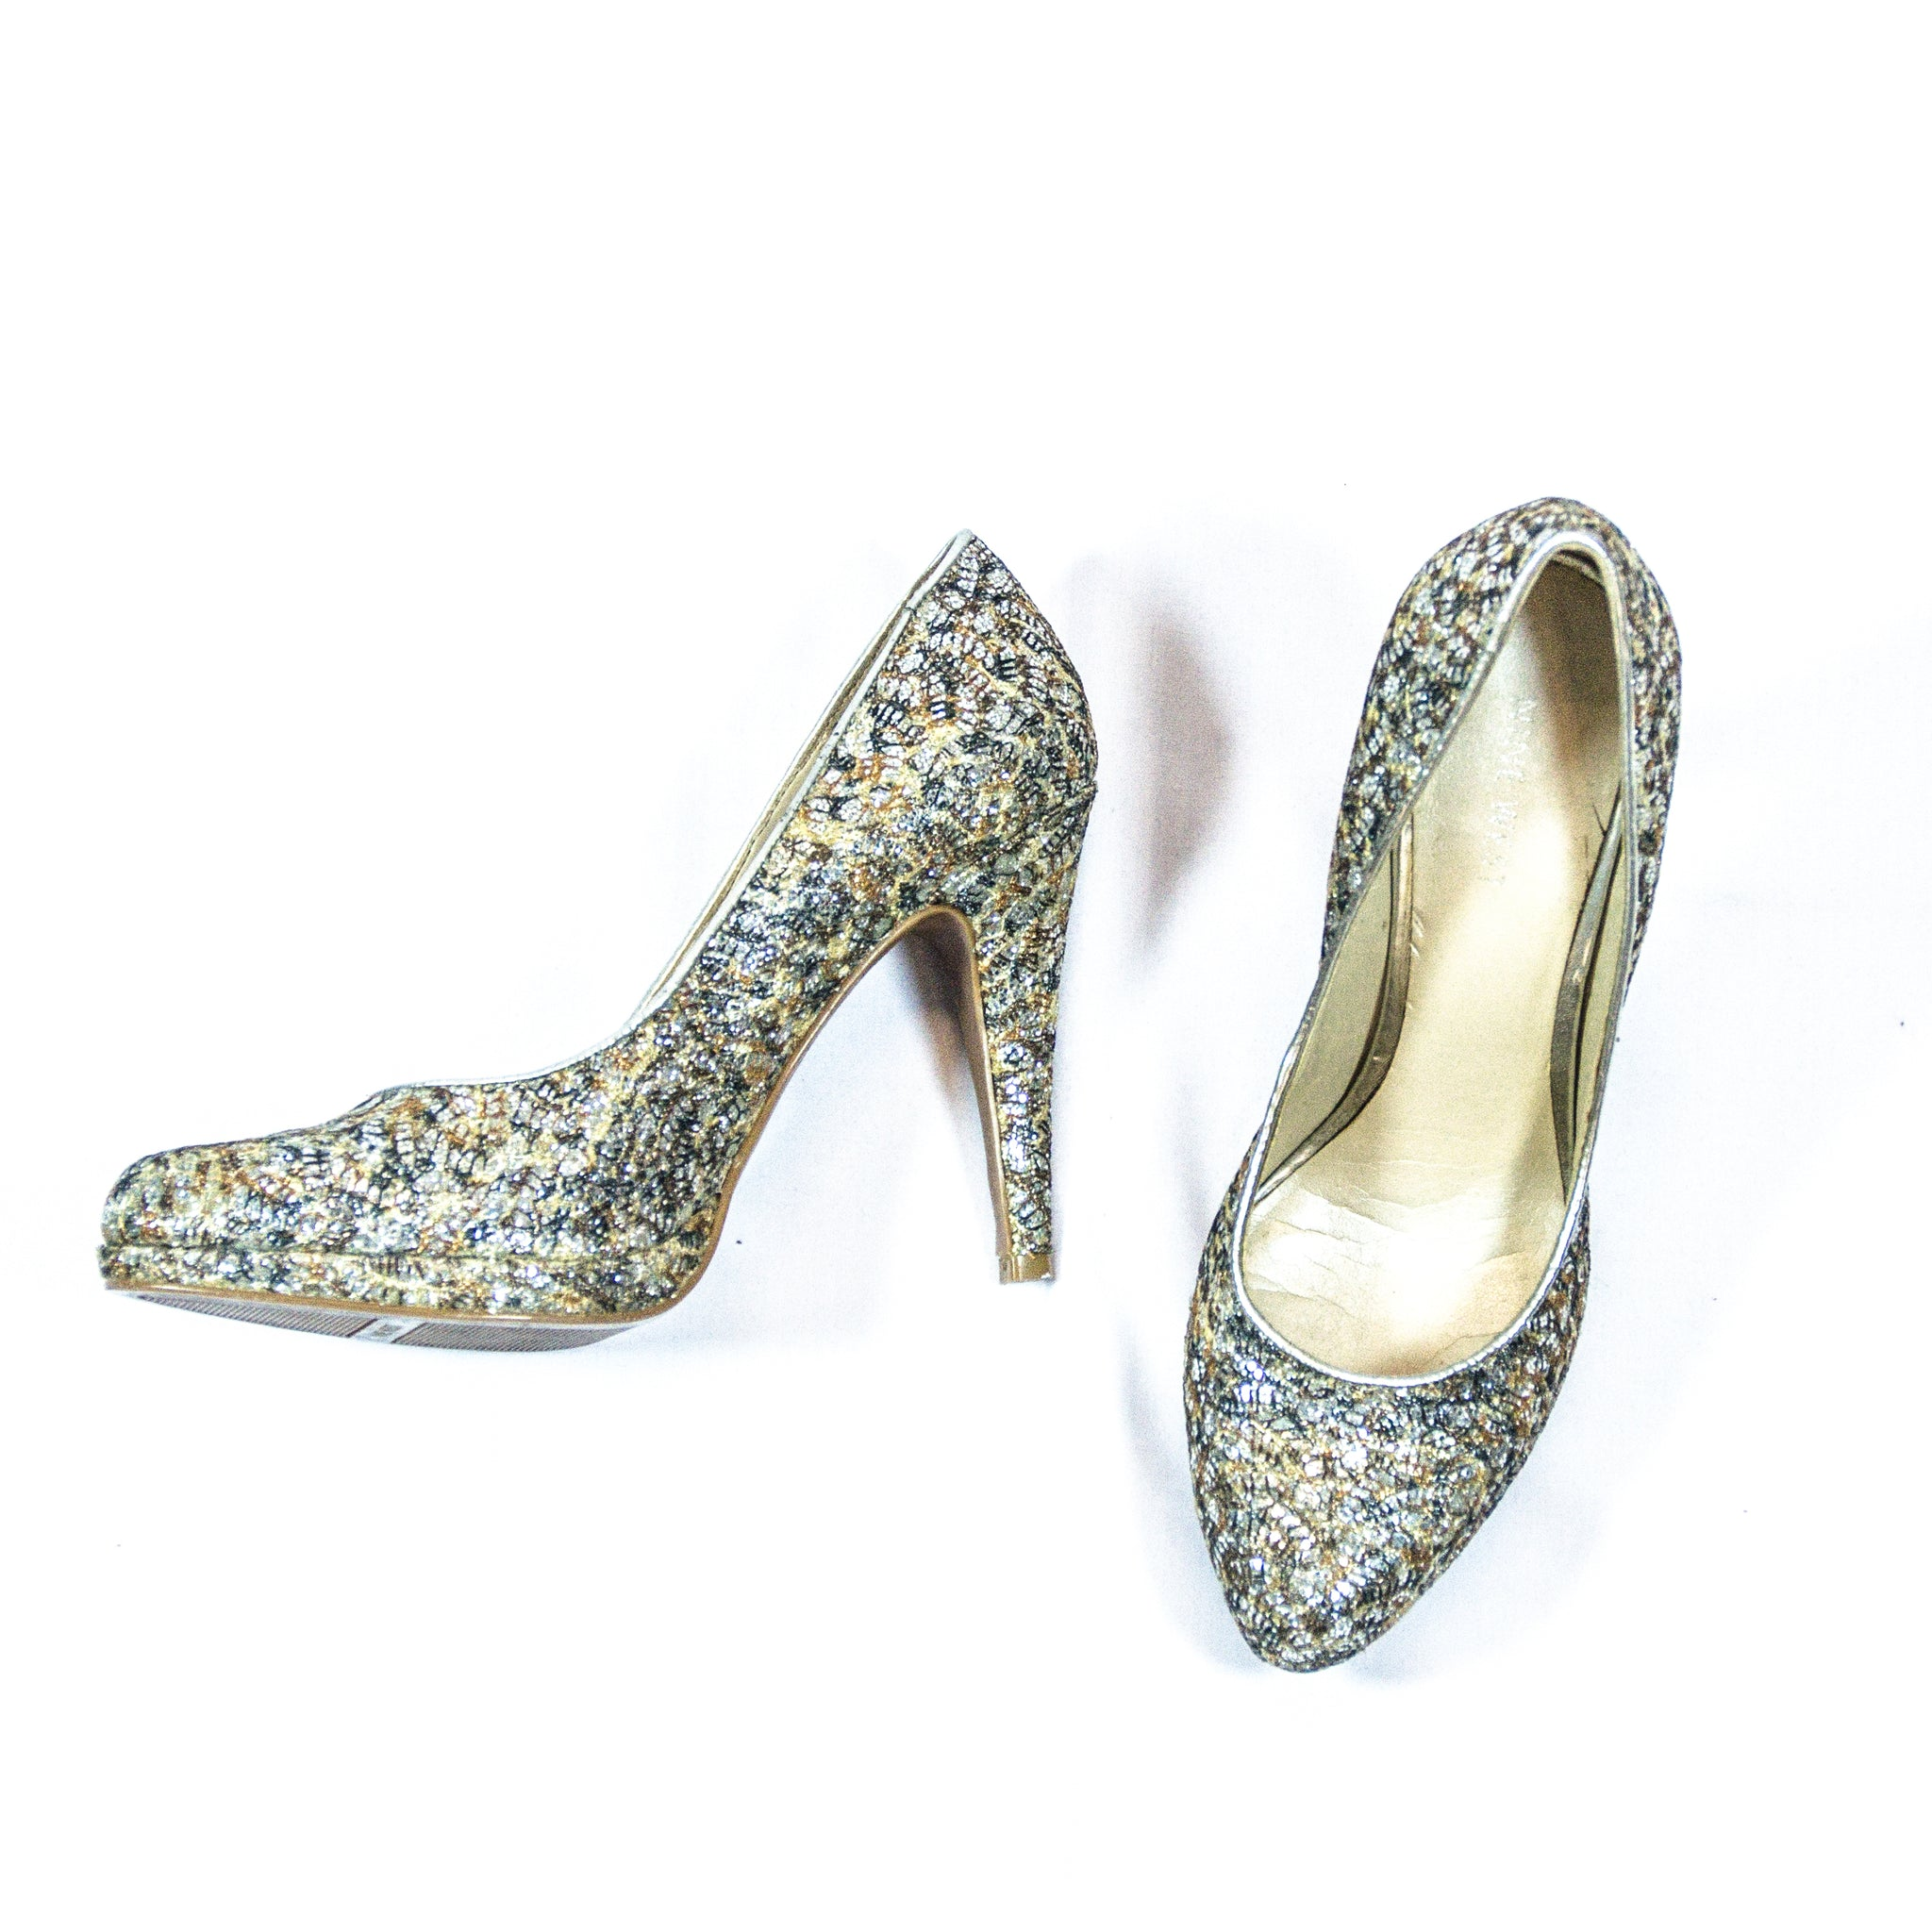 Nine west Silver Pumps with glitter details